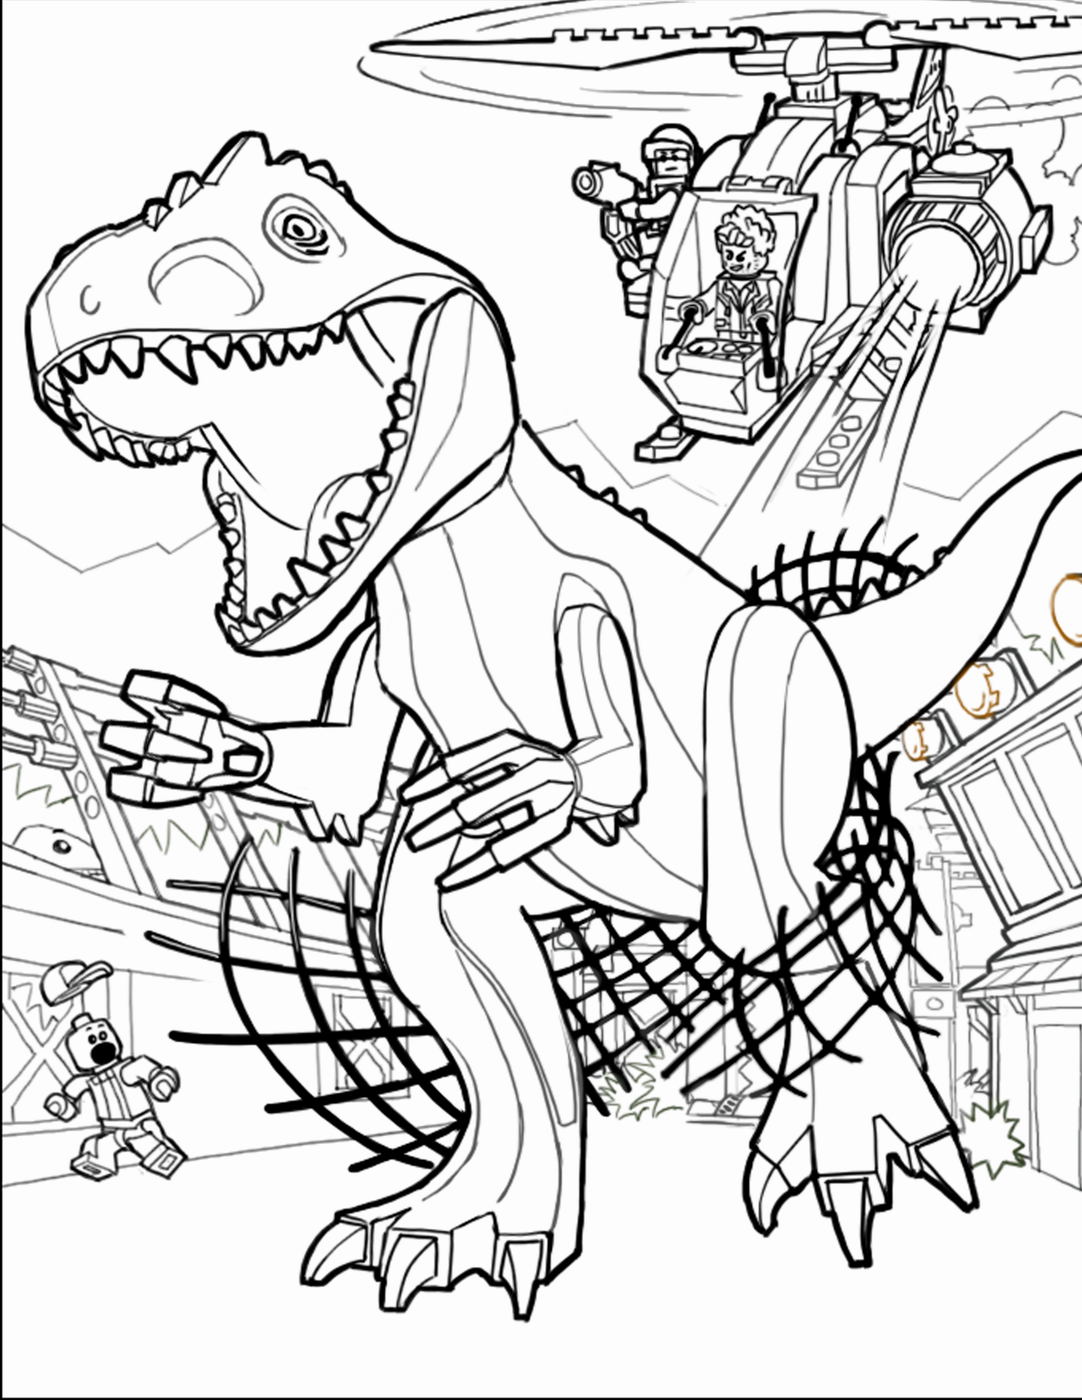 Printable coloring pages jurassic world - Find This Pin And More On Printables Lego Coloring Pages Jurassic World